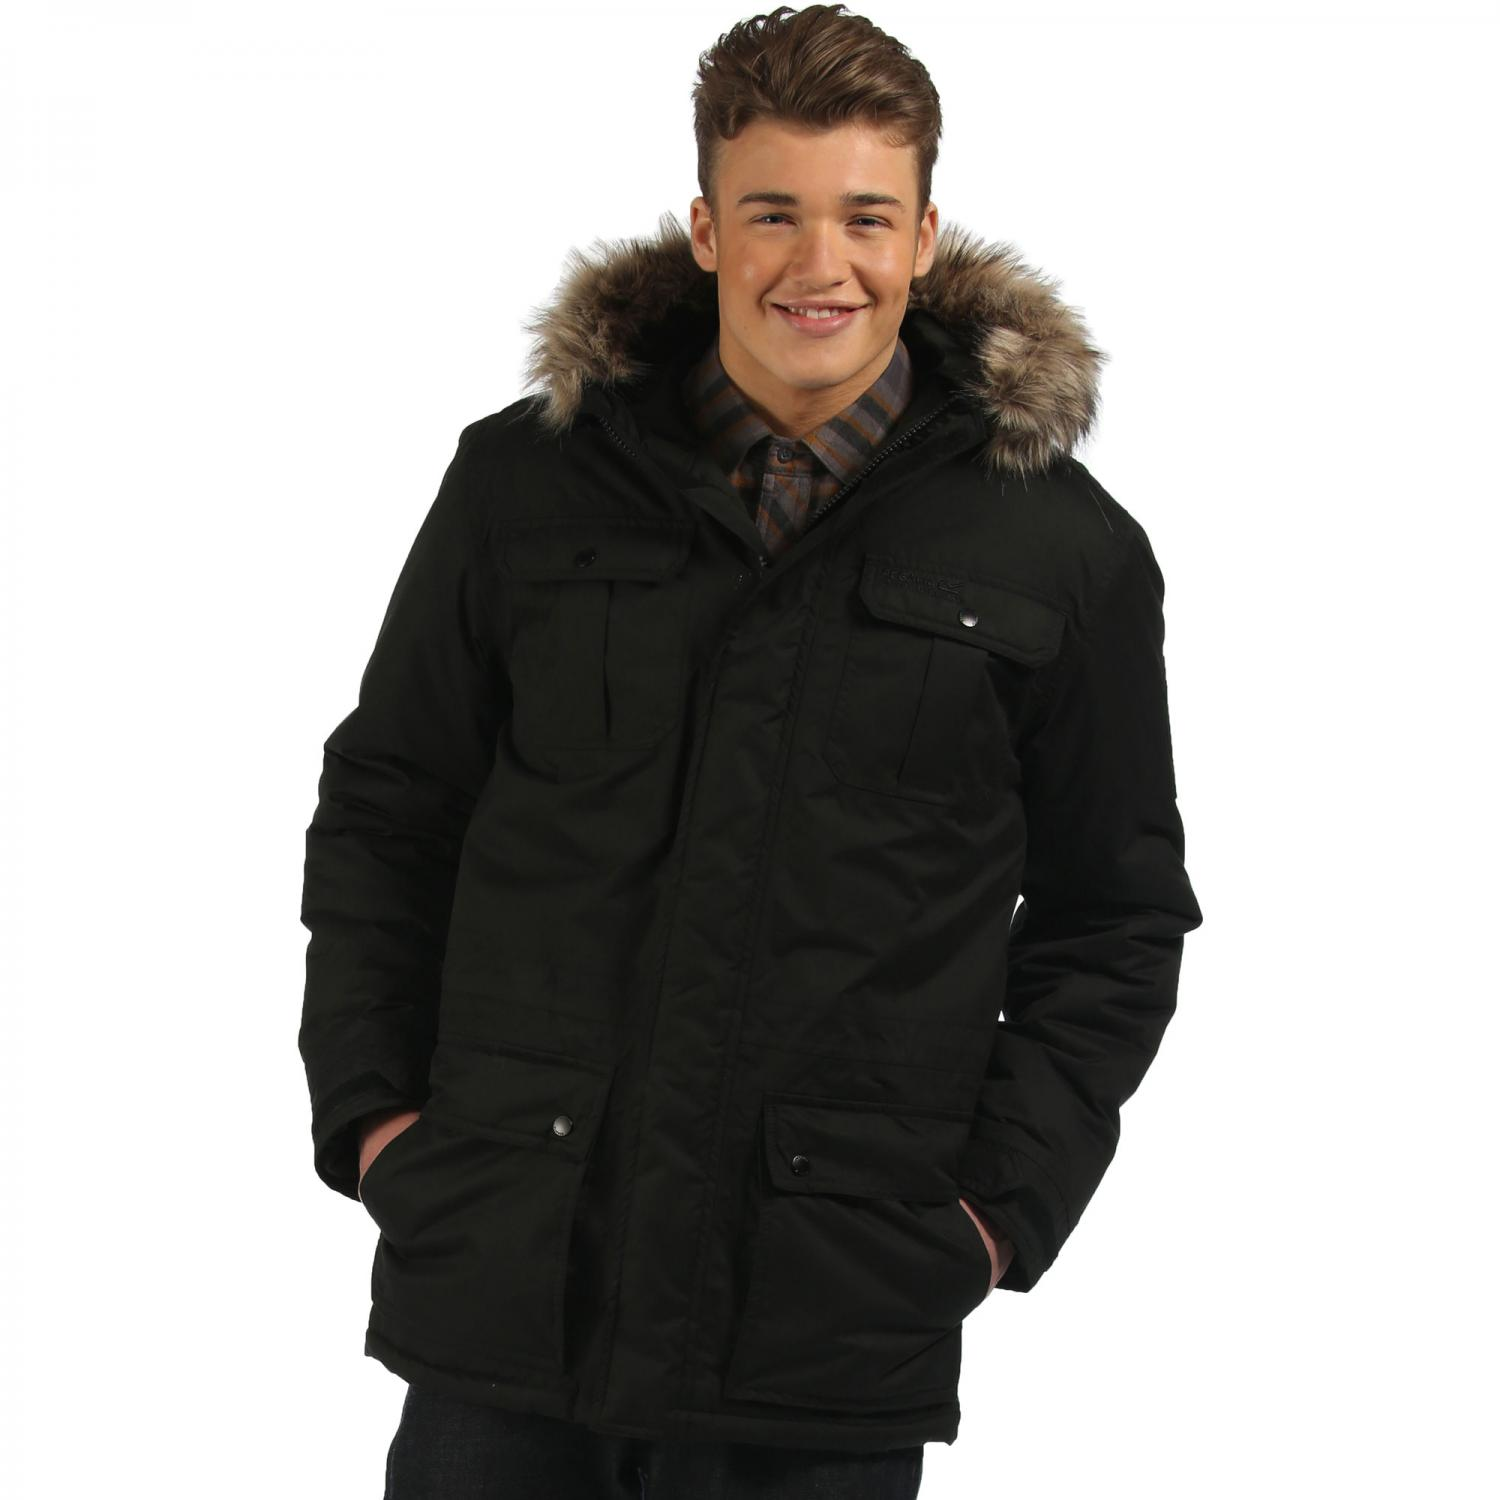 Saltoro Parka Jacket Black